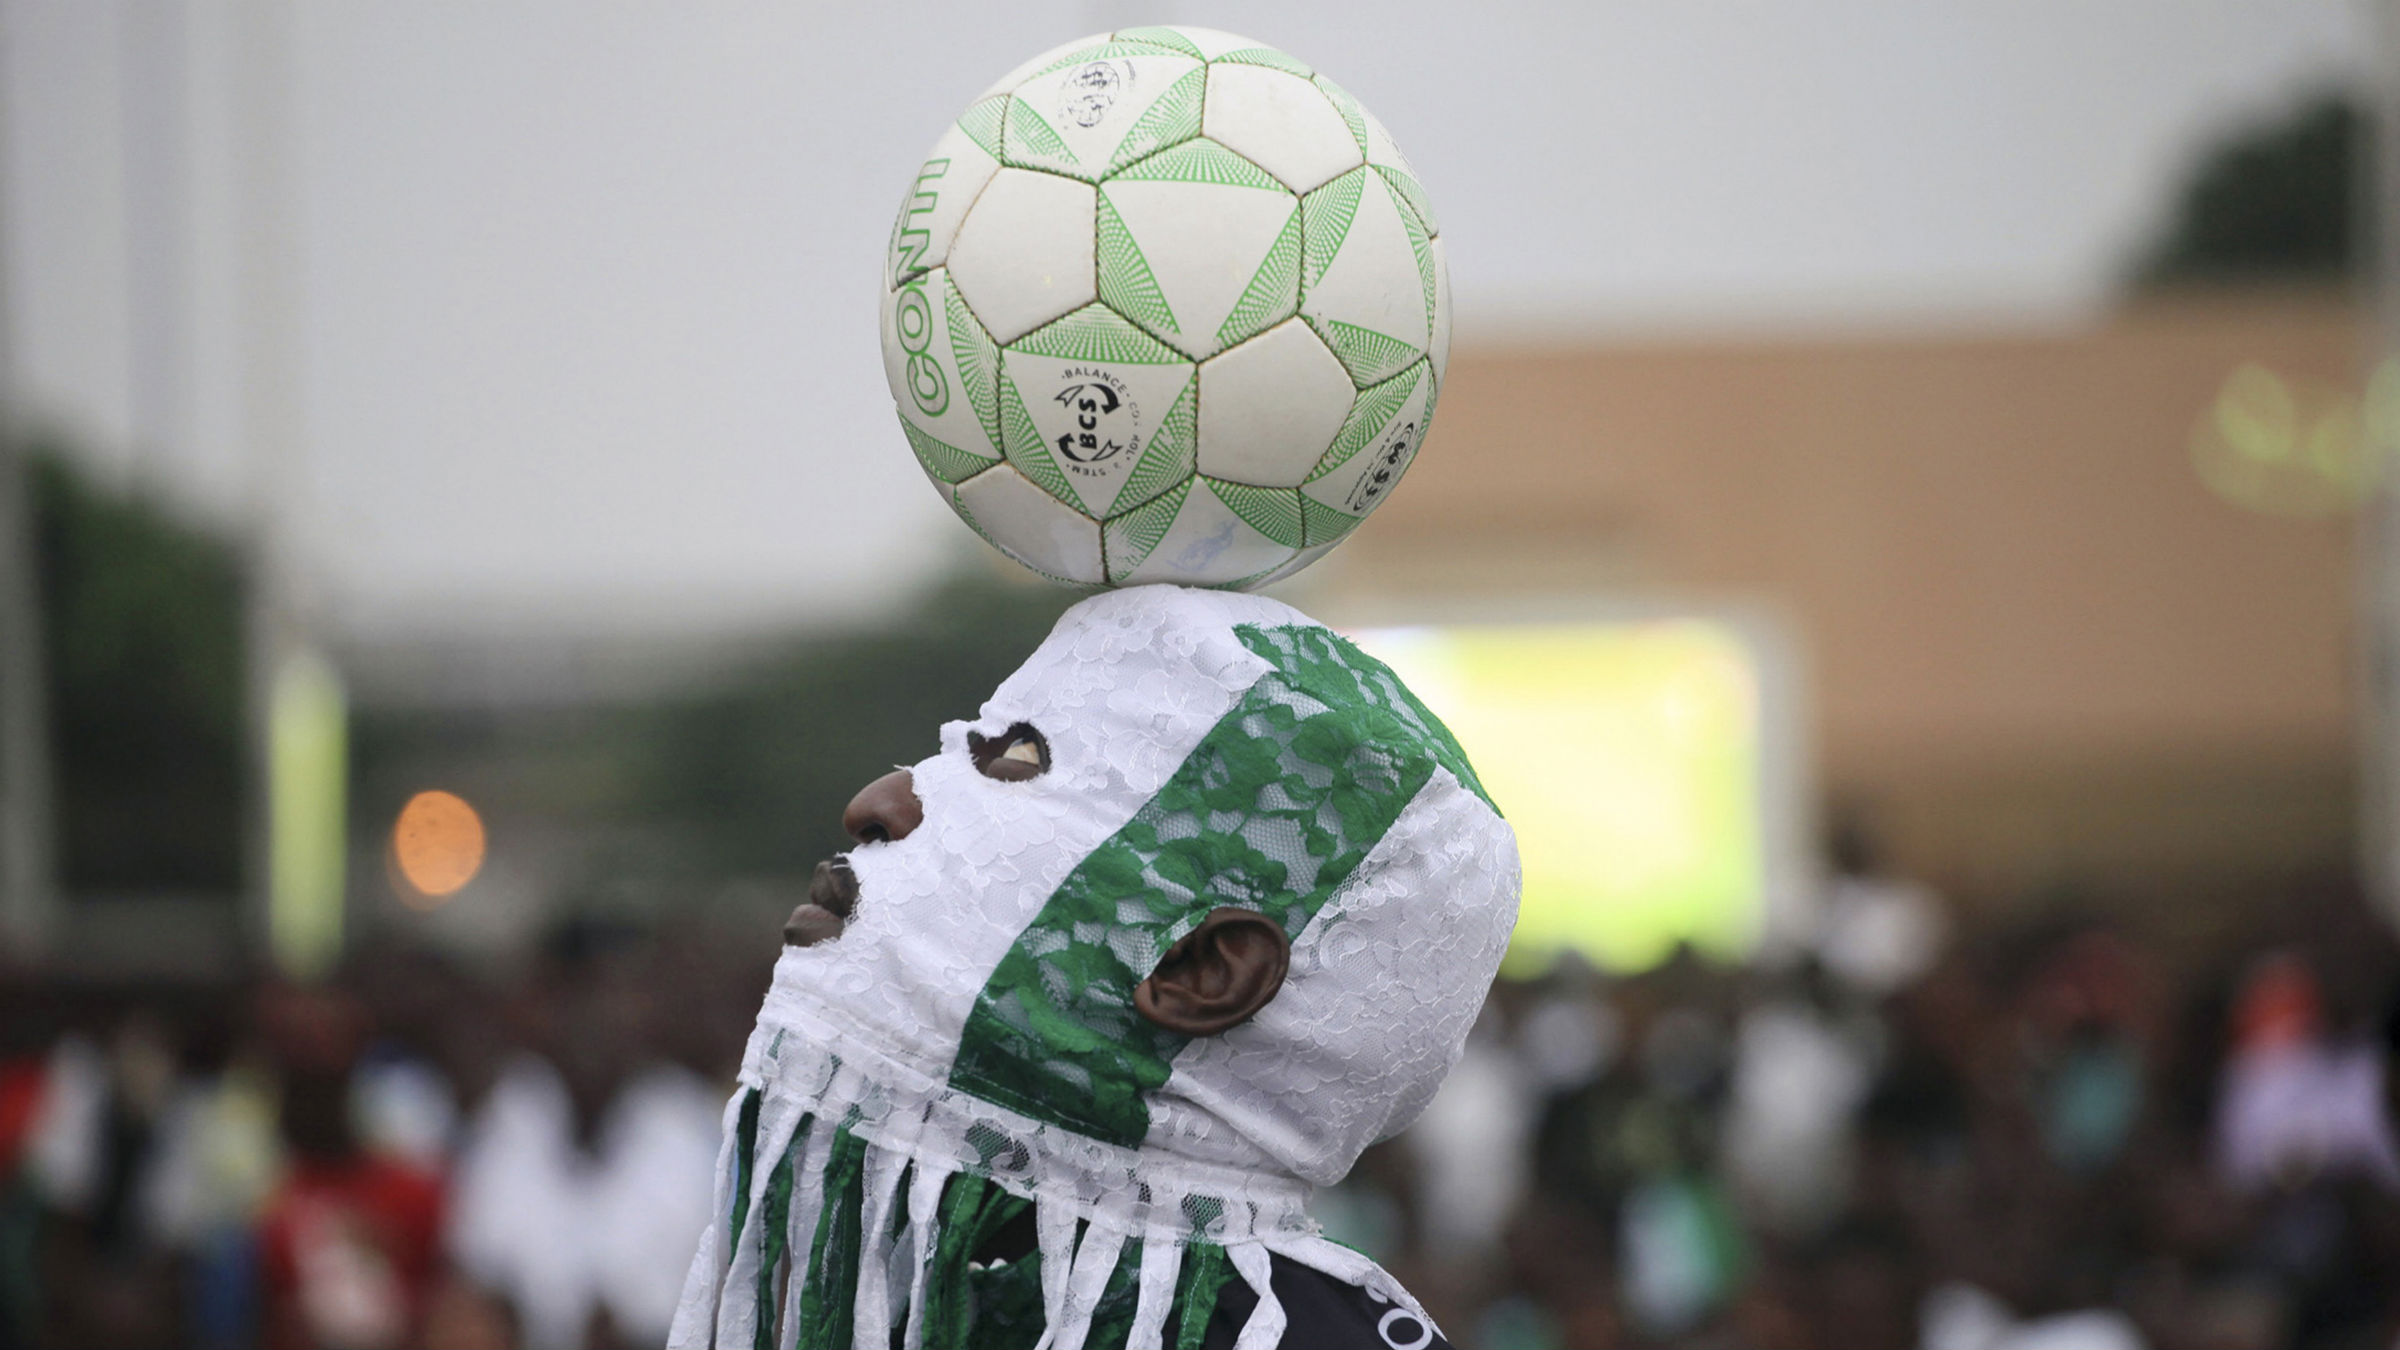 A performer juggles a ball at an open football viewing centre before the start of the match between Nigeria and Burkina Faso during the final match of the Africa cup of Nations at Testlim Balogun stadium in Lagos February 10, 2013.